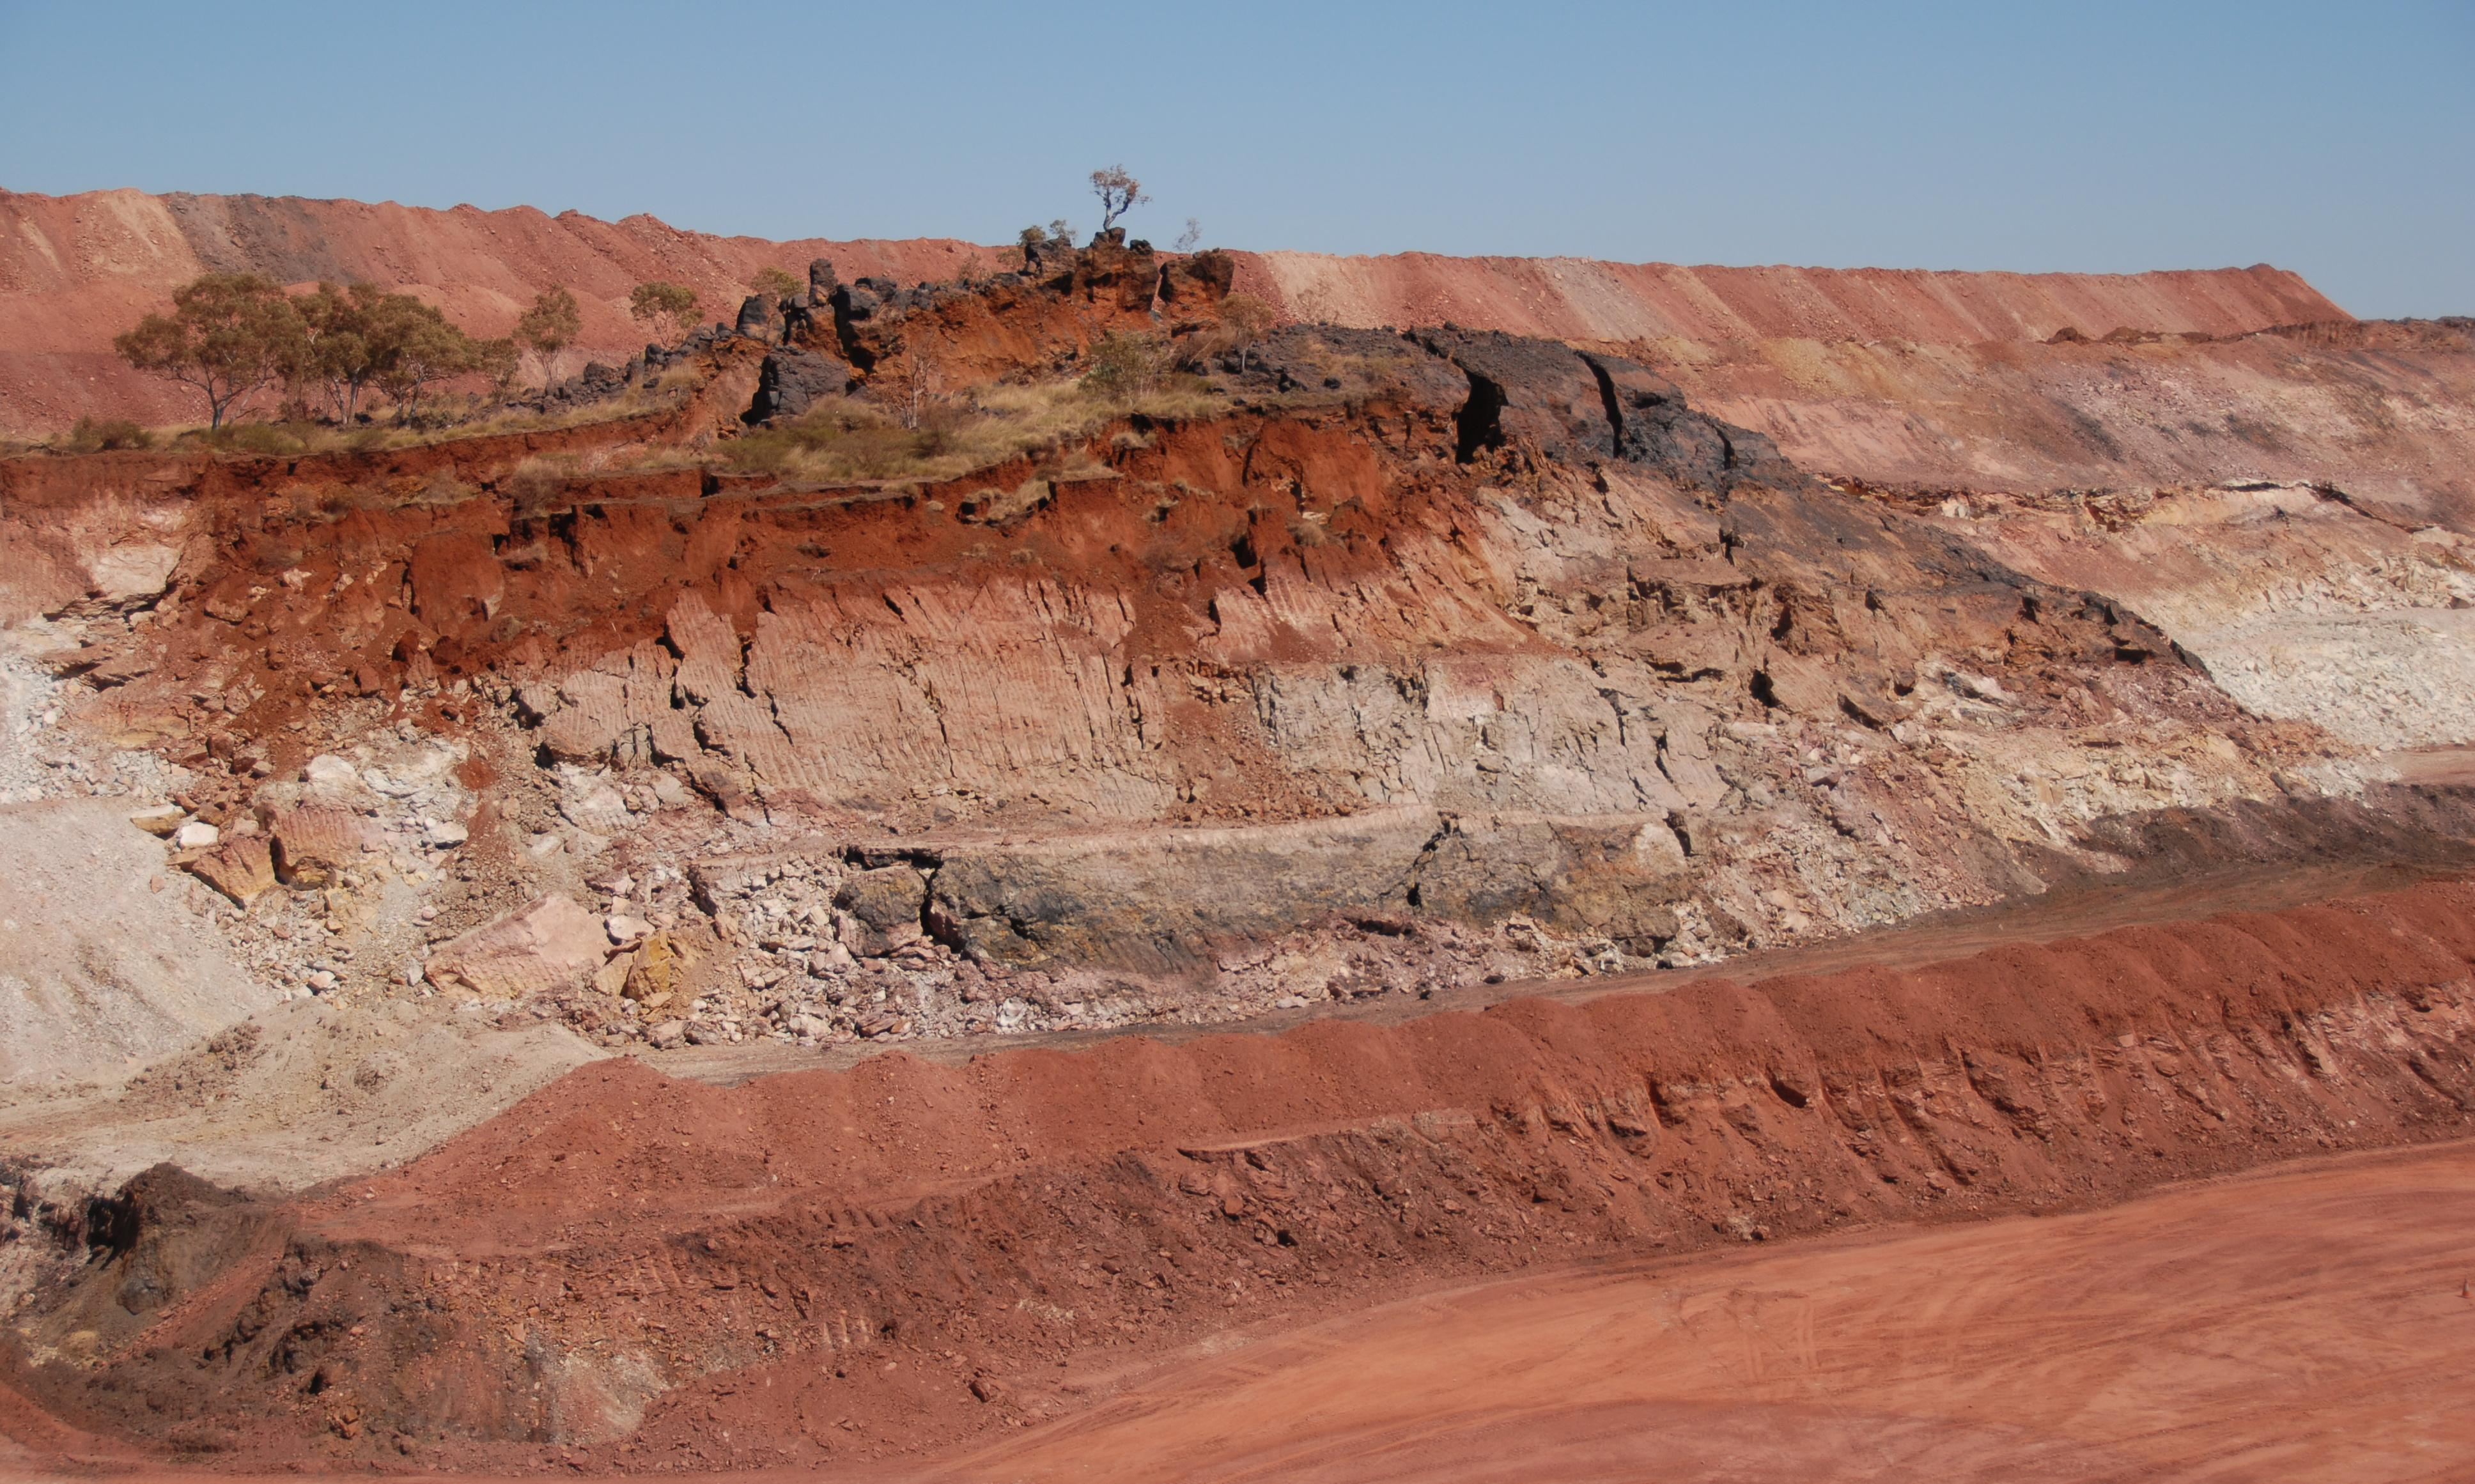 Northern Territory mine worker buried under collapsing wall